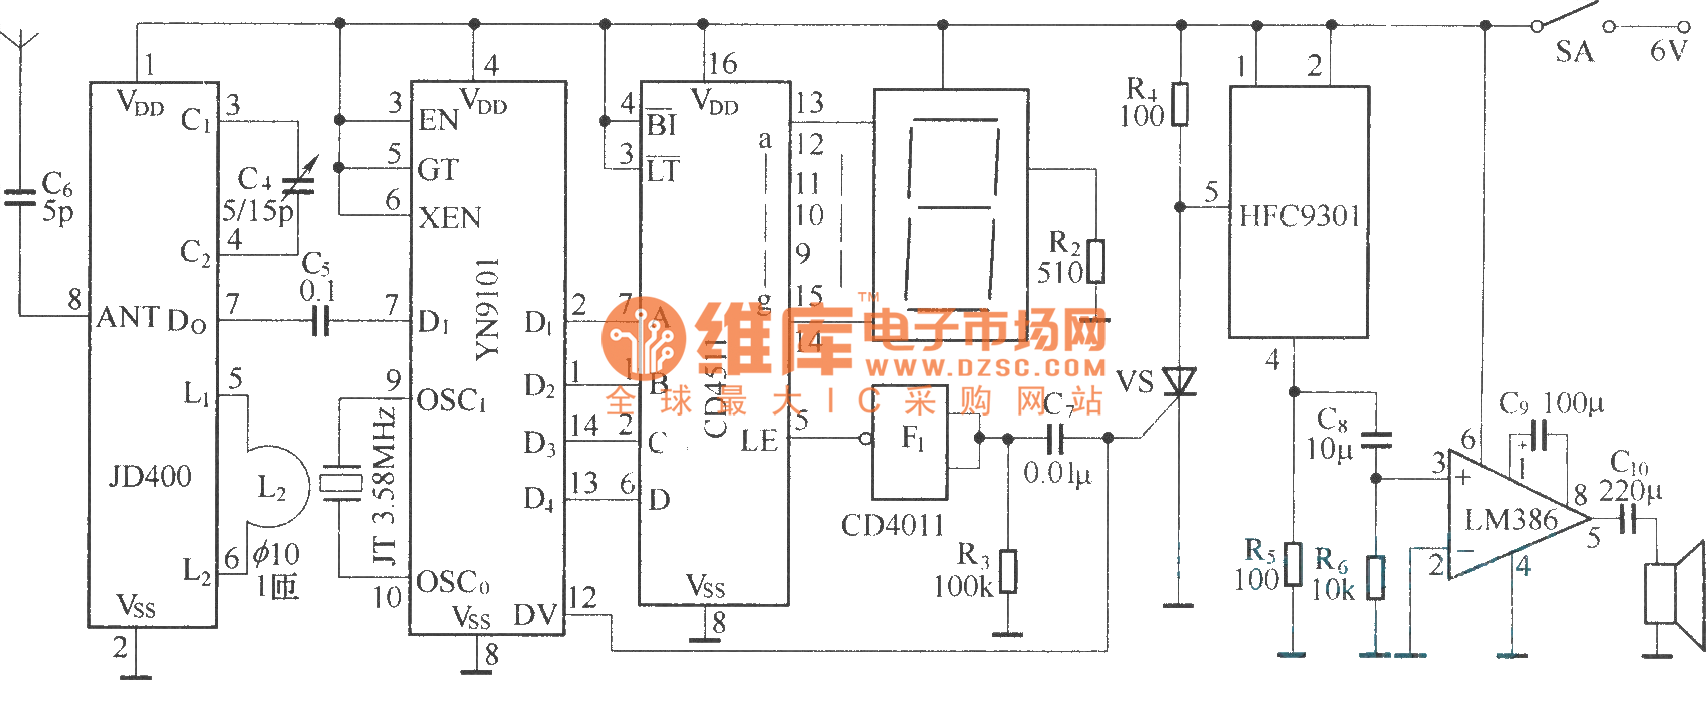 Composed Of Fdd400 1 And Jdd400 Digital Wireless Bleep System Circuit Diagram For